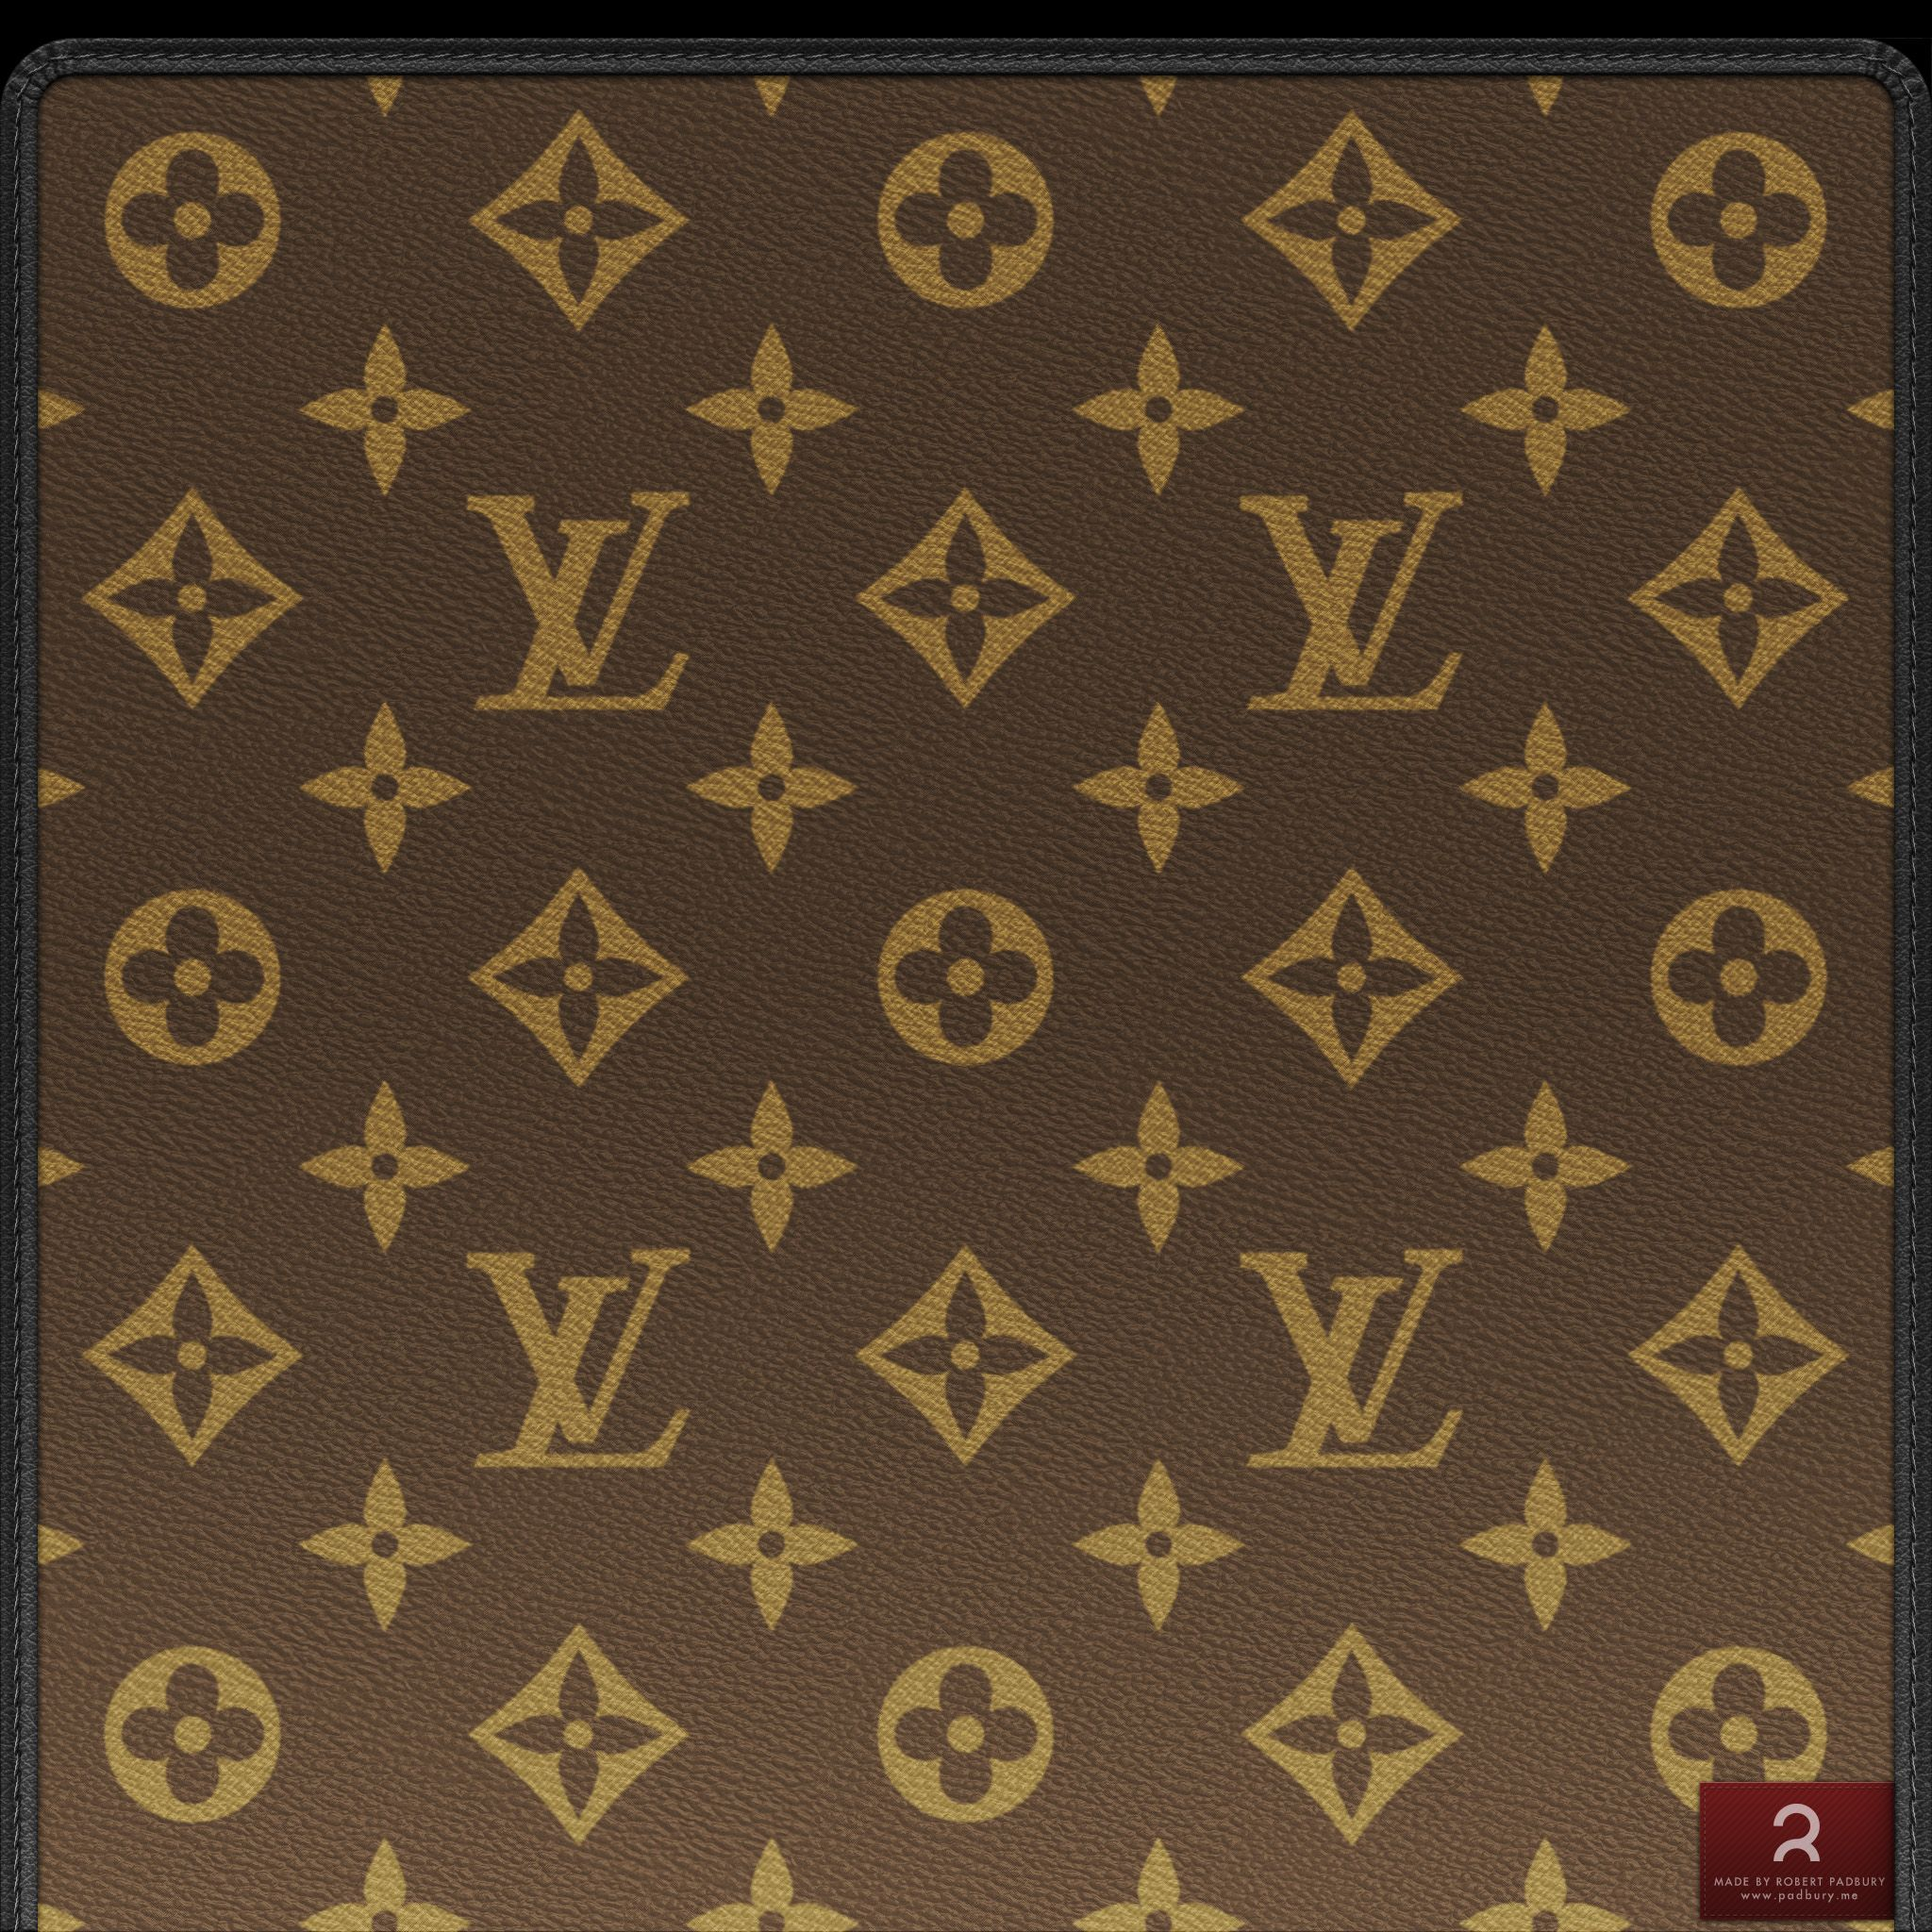 Louis Vuitton Pattern Wallpapers Top Free Louis Vuitton Pattern